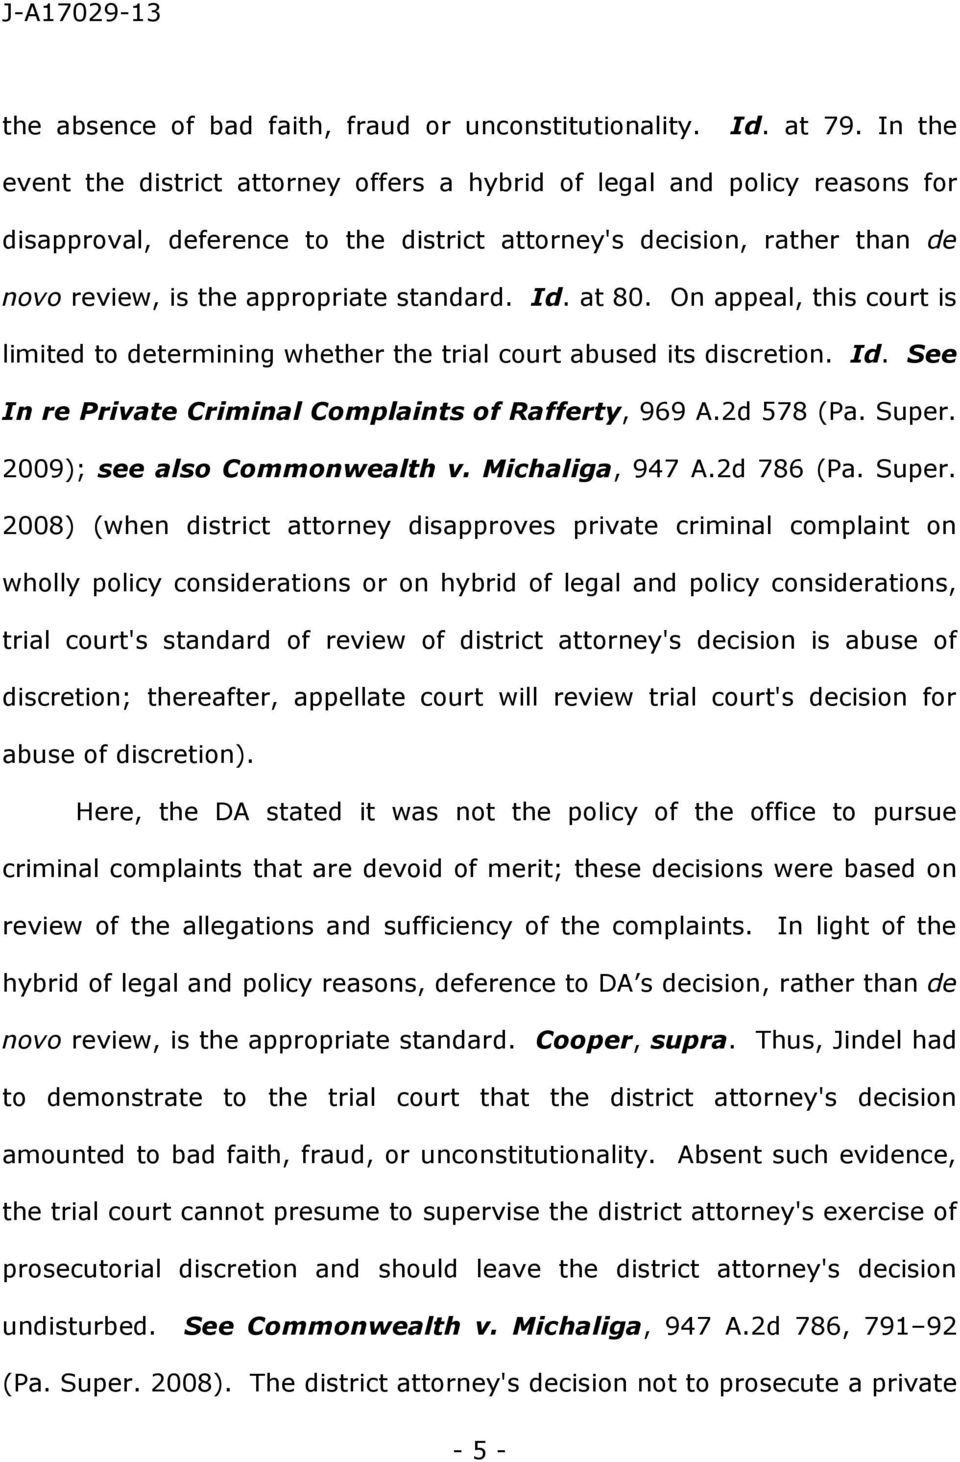 Id. at 80. On appeal, this court is limited to determining whether the trial court abused its discretion. Id. See In re Private Criminal Complaints of Rafferty, 969 A.2d 578 (Pa. Super.